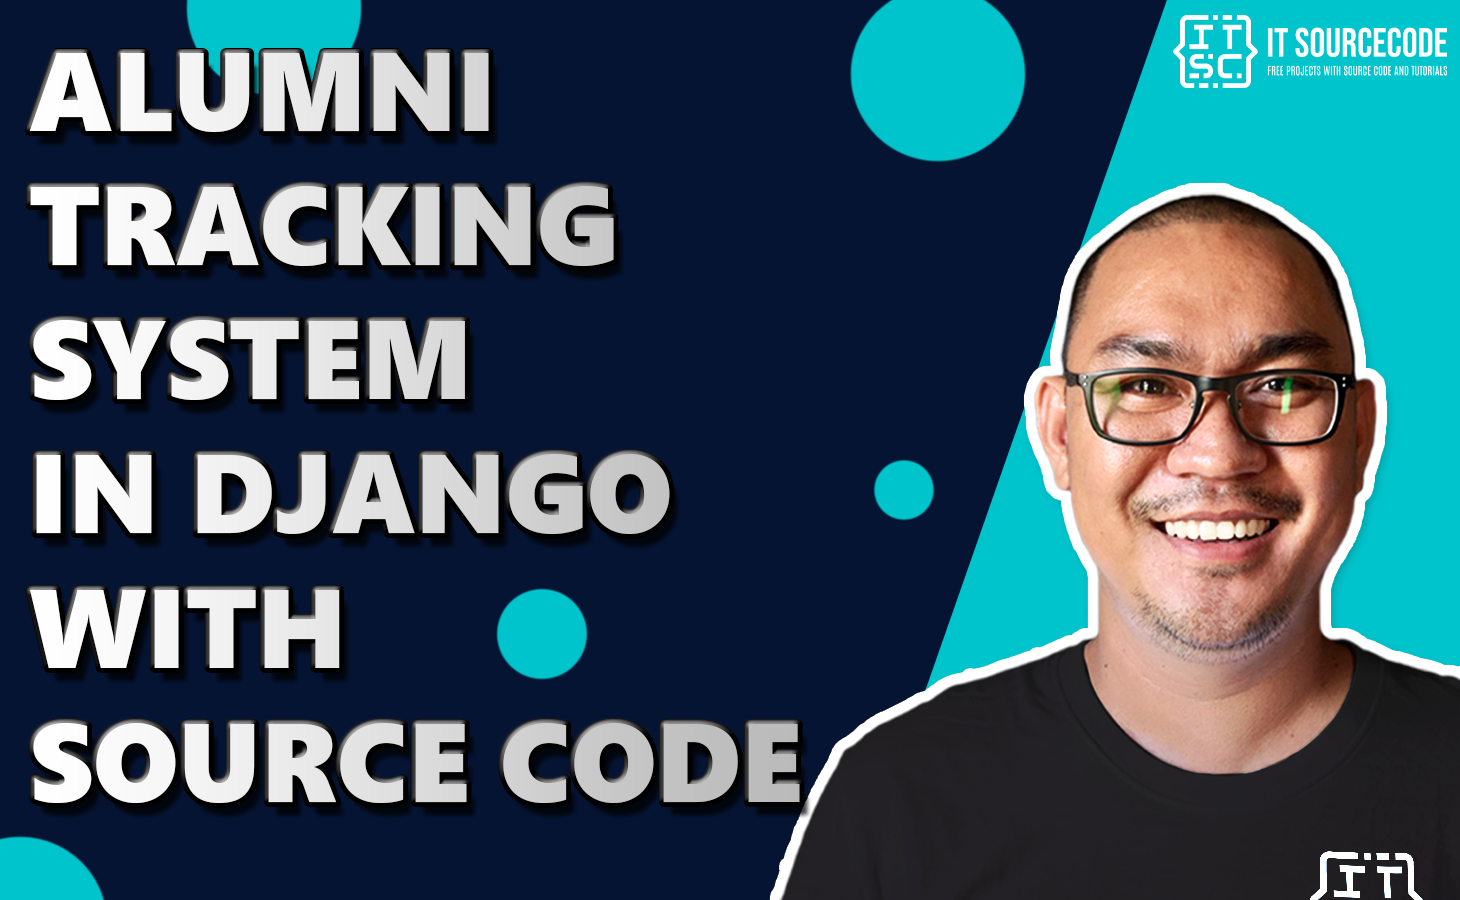 Alumni tracking system in django with source code